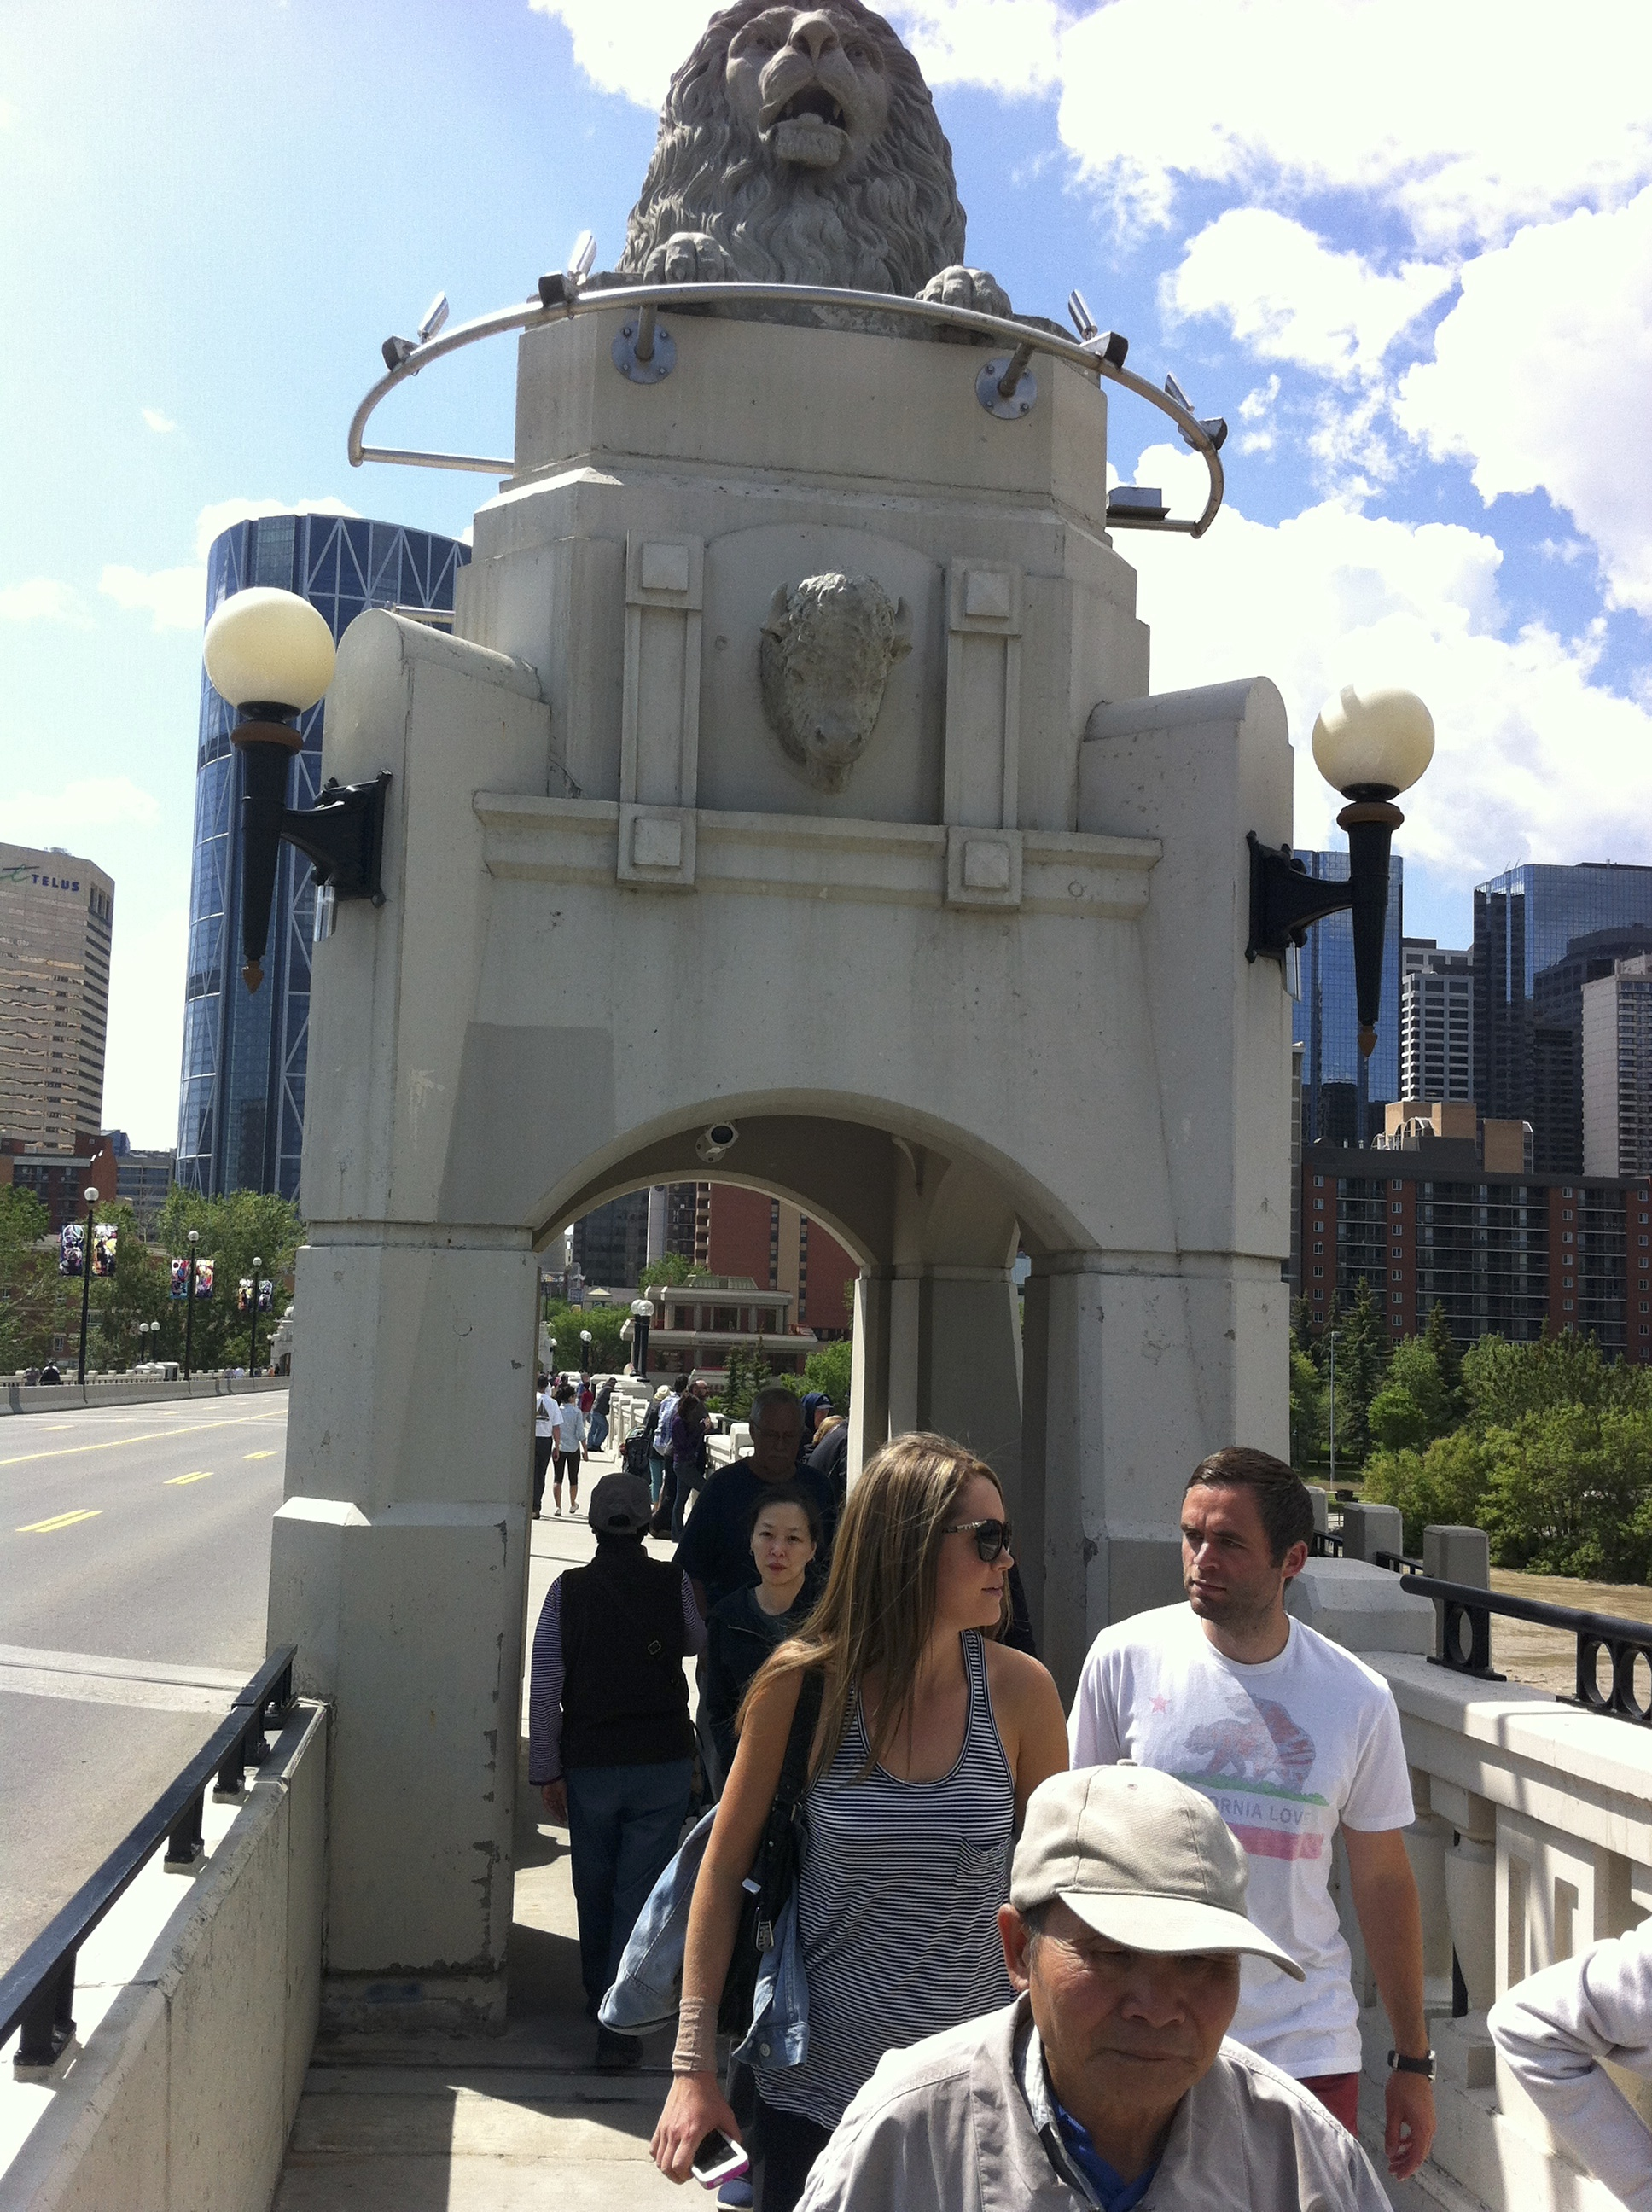 Centre Street Bridge is a popular pedestrian link between upper and lower Chinatown.